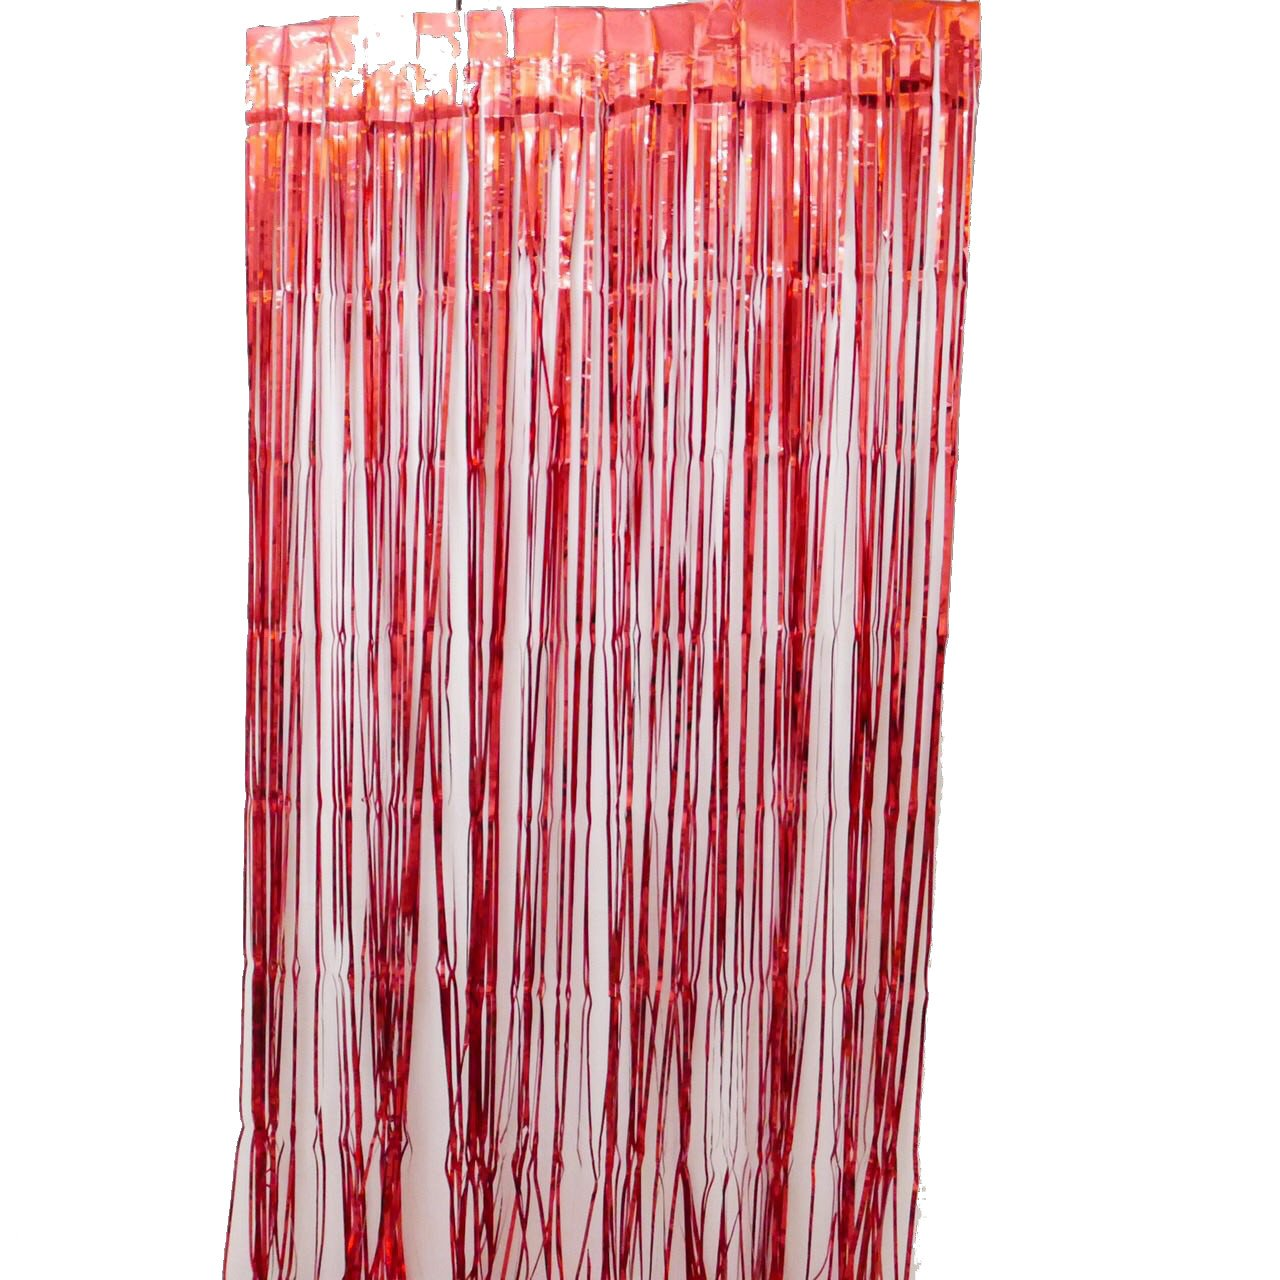 Red Fringe Curtains 1 X 2 M